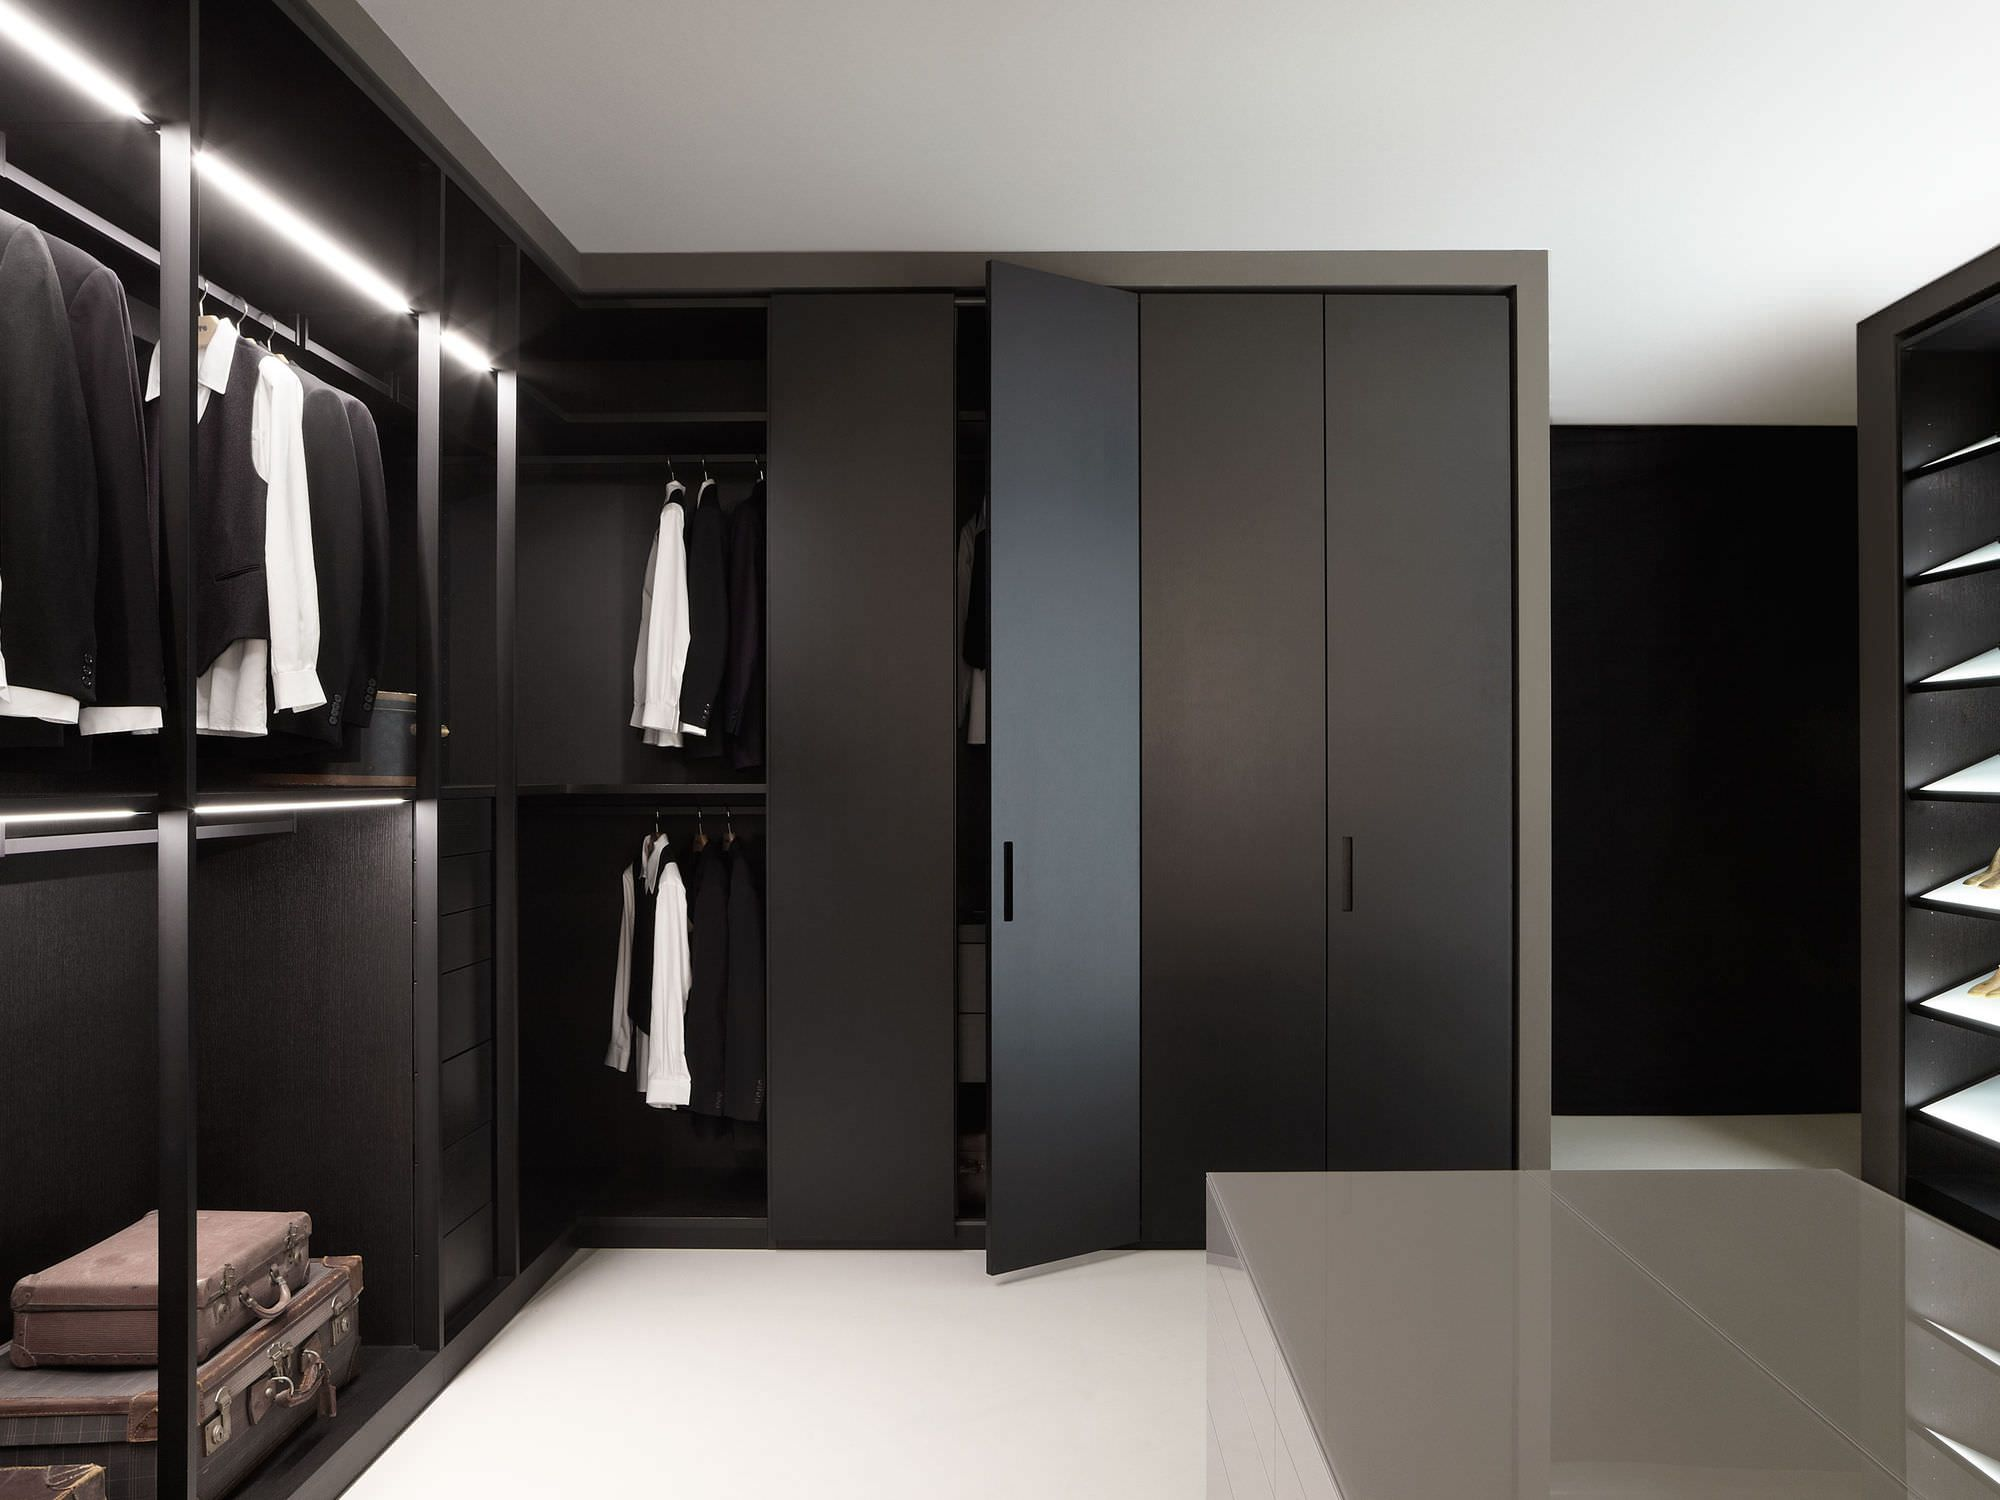 25 Best Modern Storage   Closets Designs. 25 Best Modern Storage   Closets Designs   Closet designs  Modern